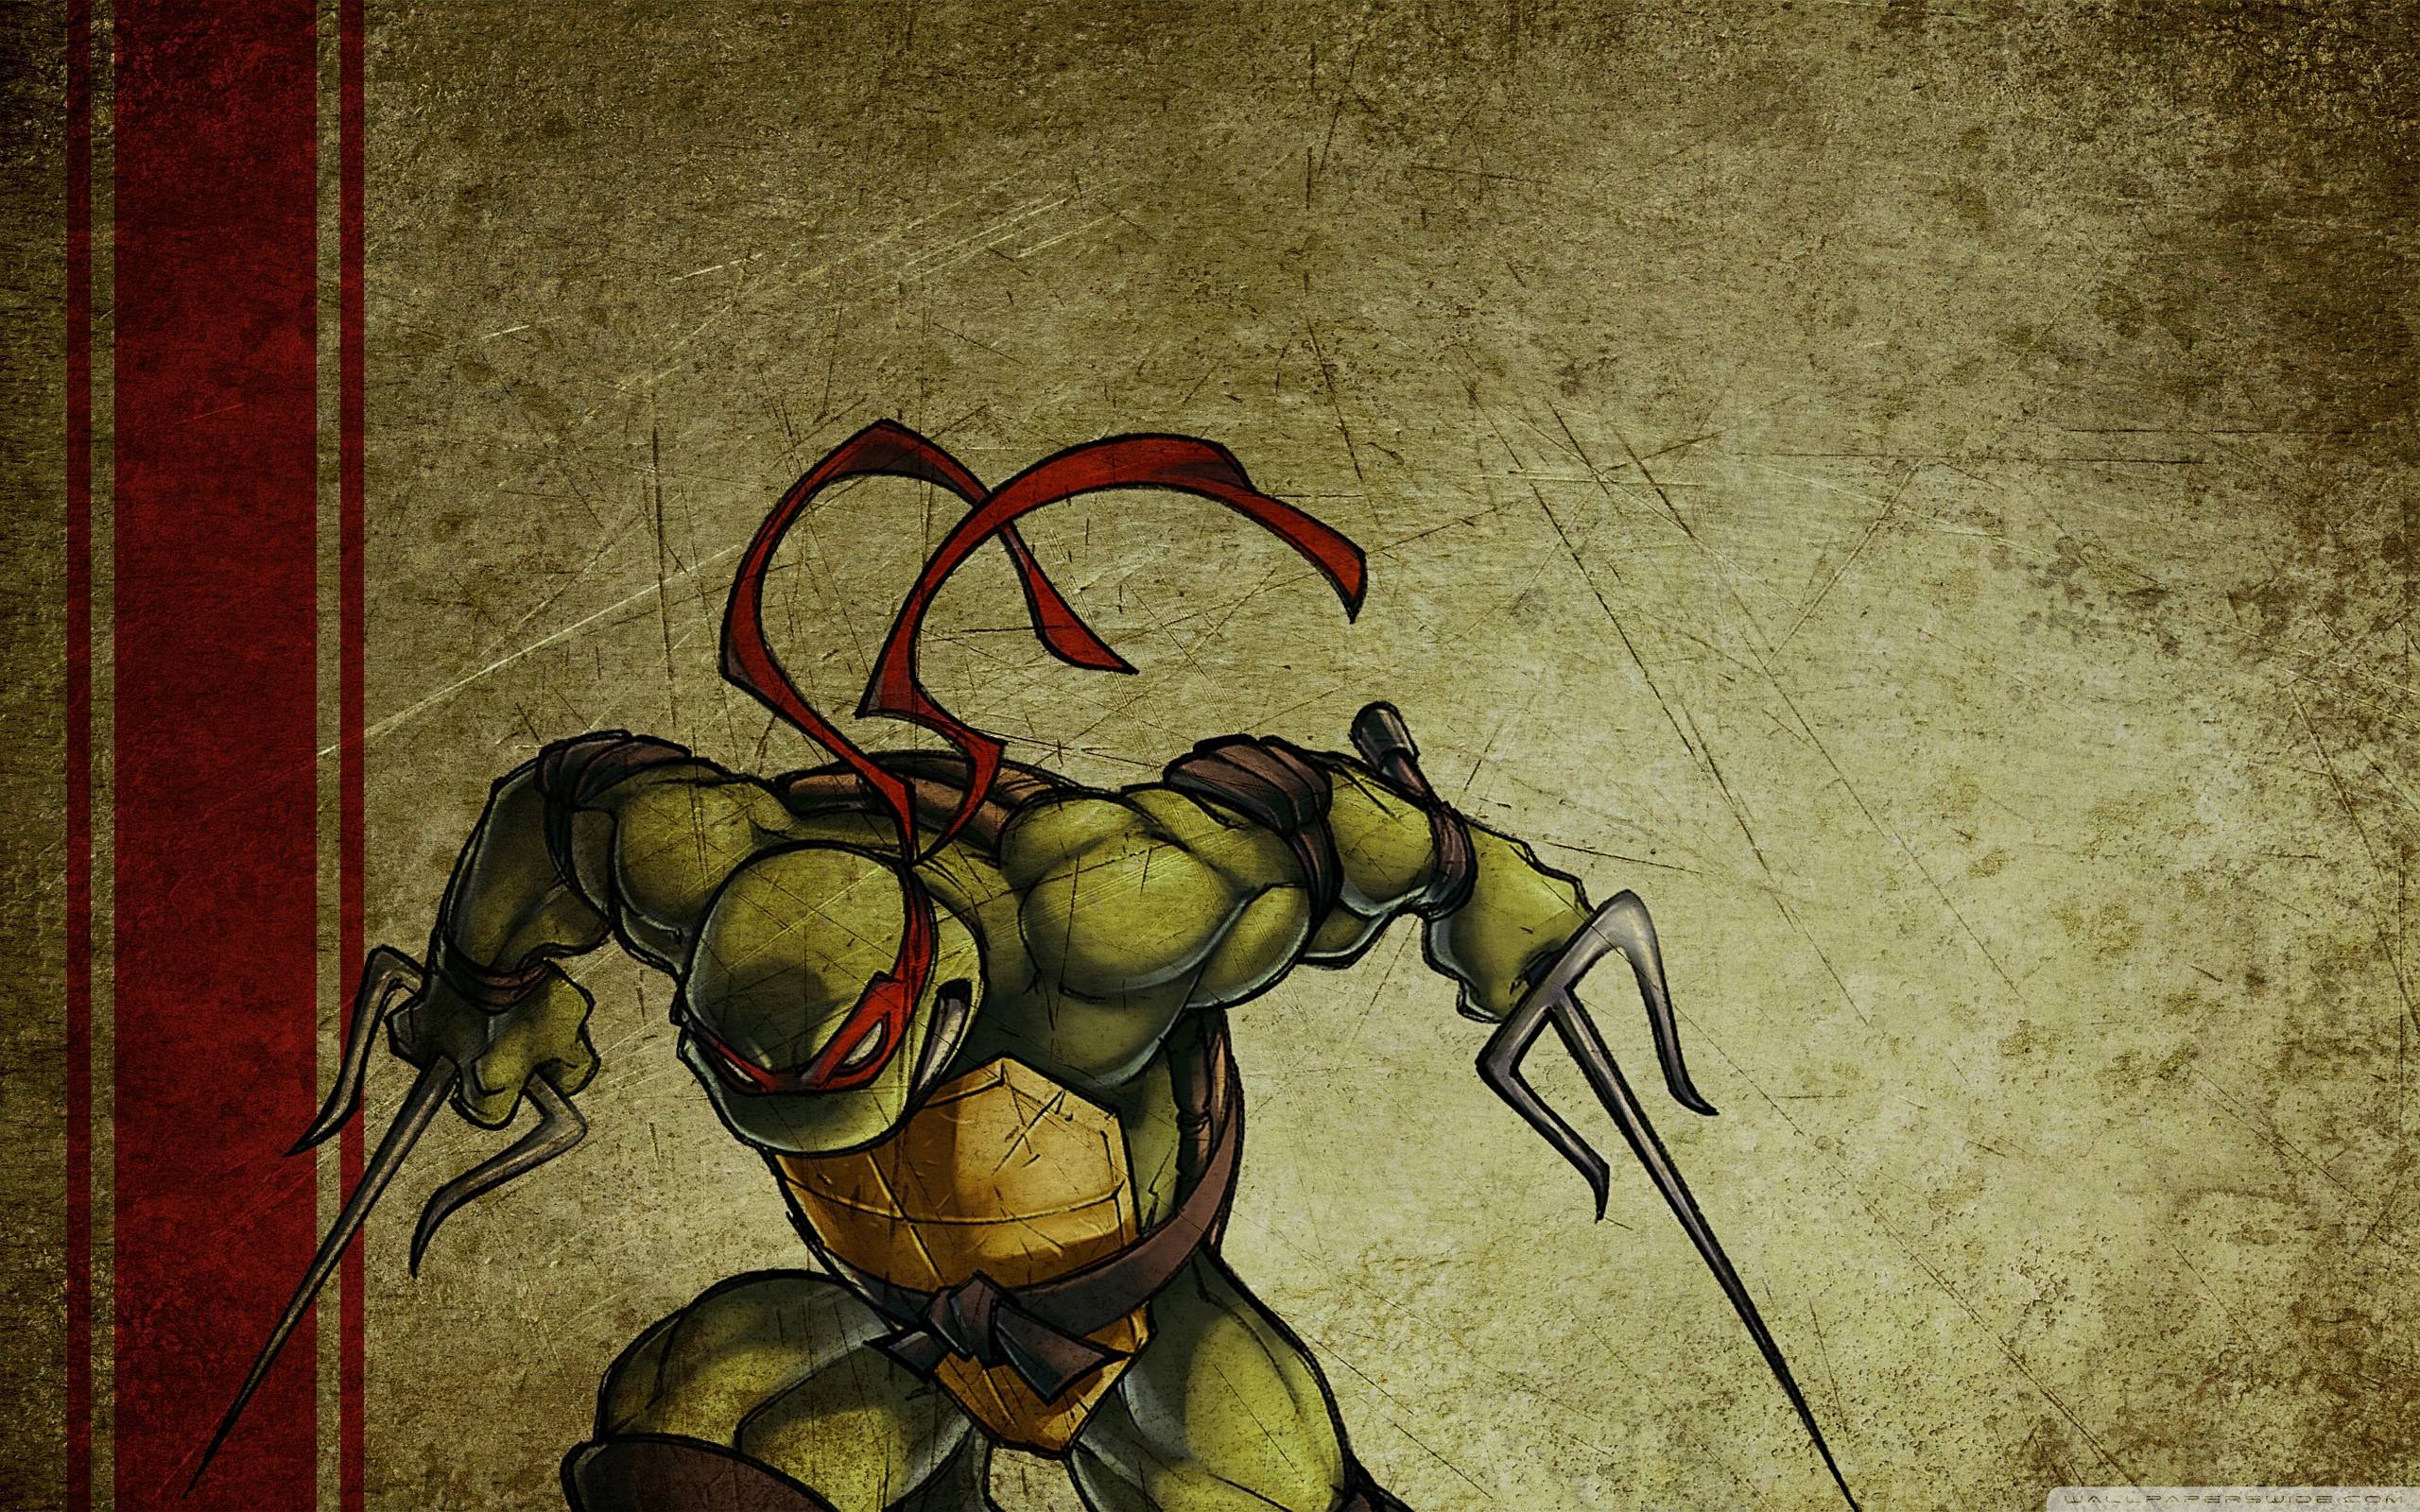 Raphael Teenage Mutant Ninja Turtles Wallpaper 2560x1600 Px Free